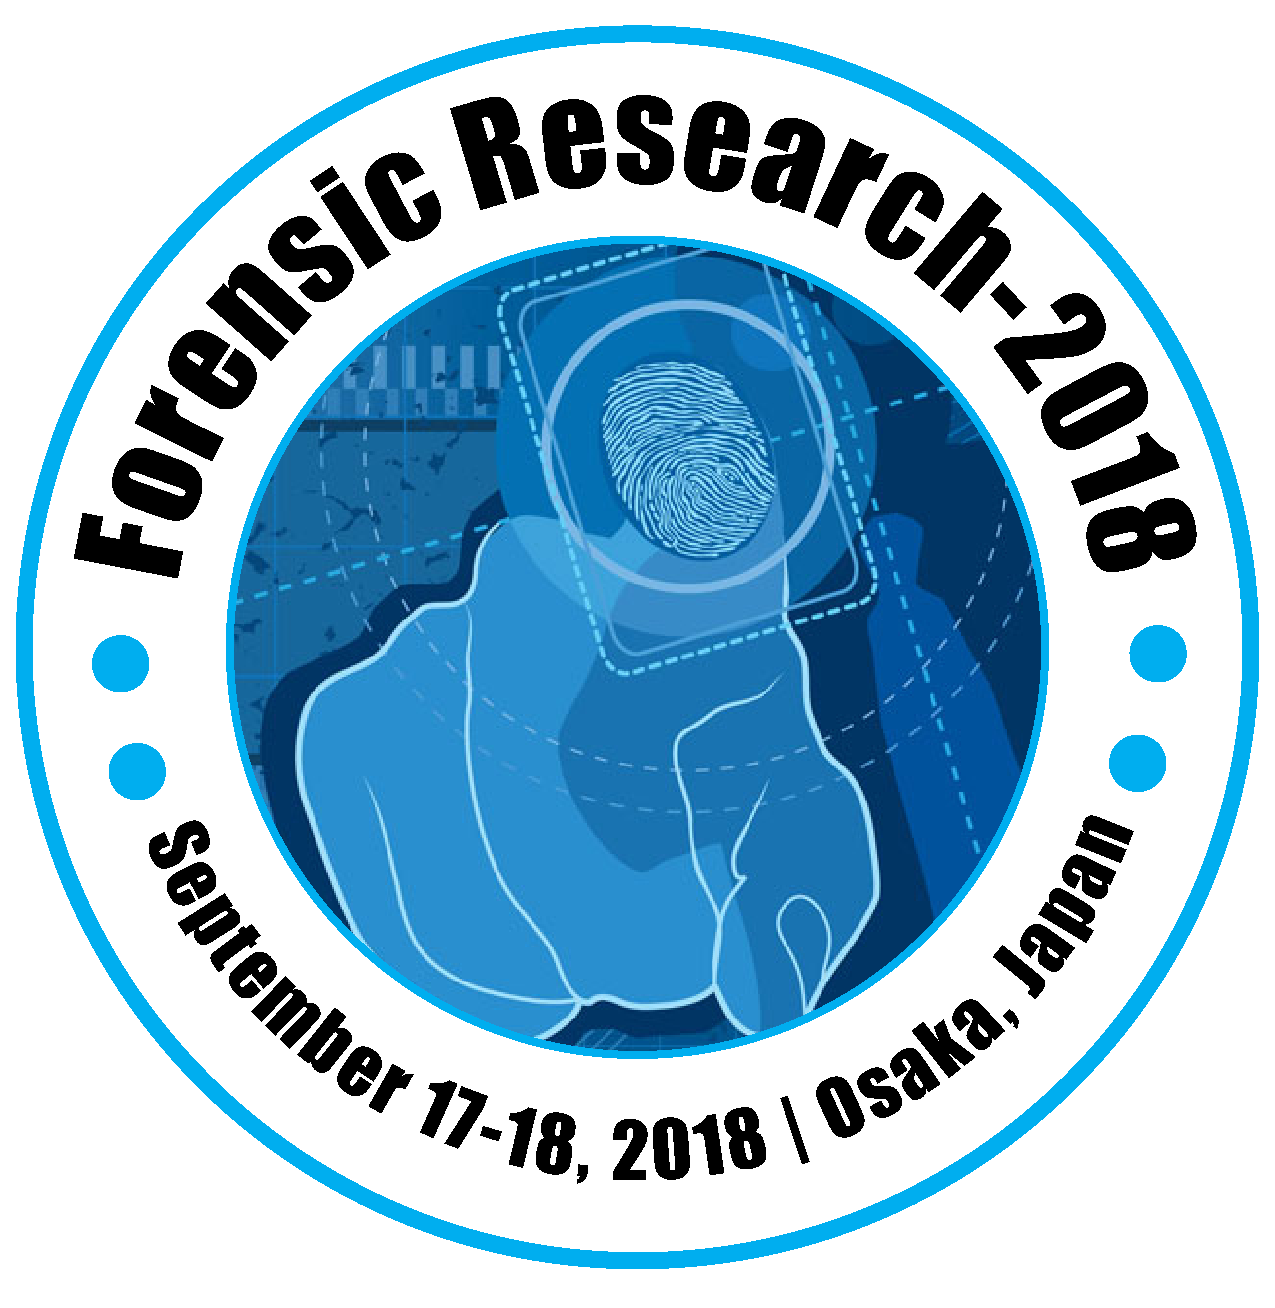 International Conference on Forensic Research & Technology